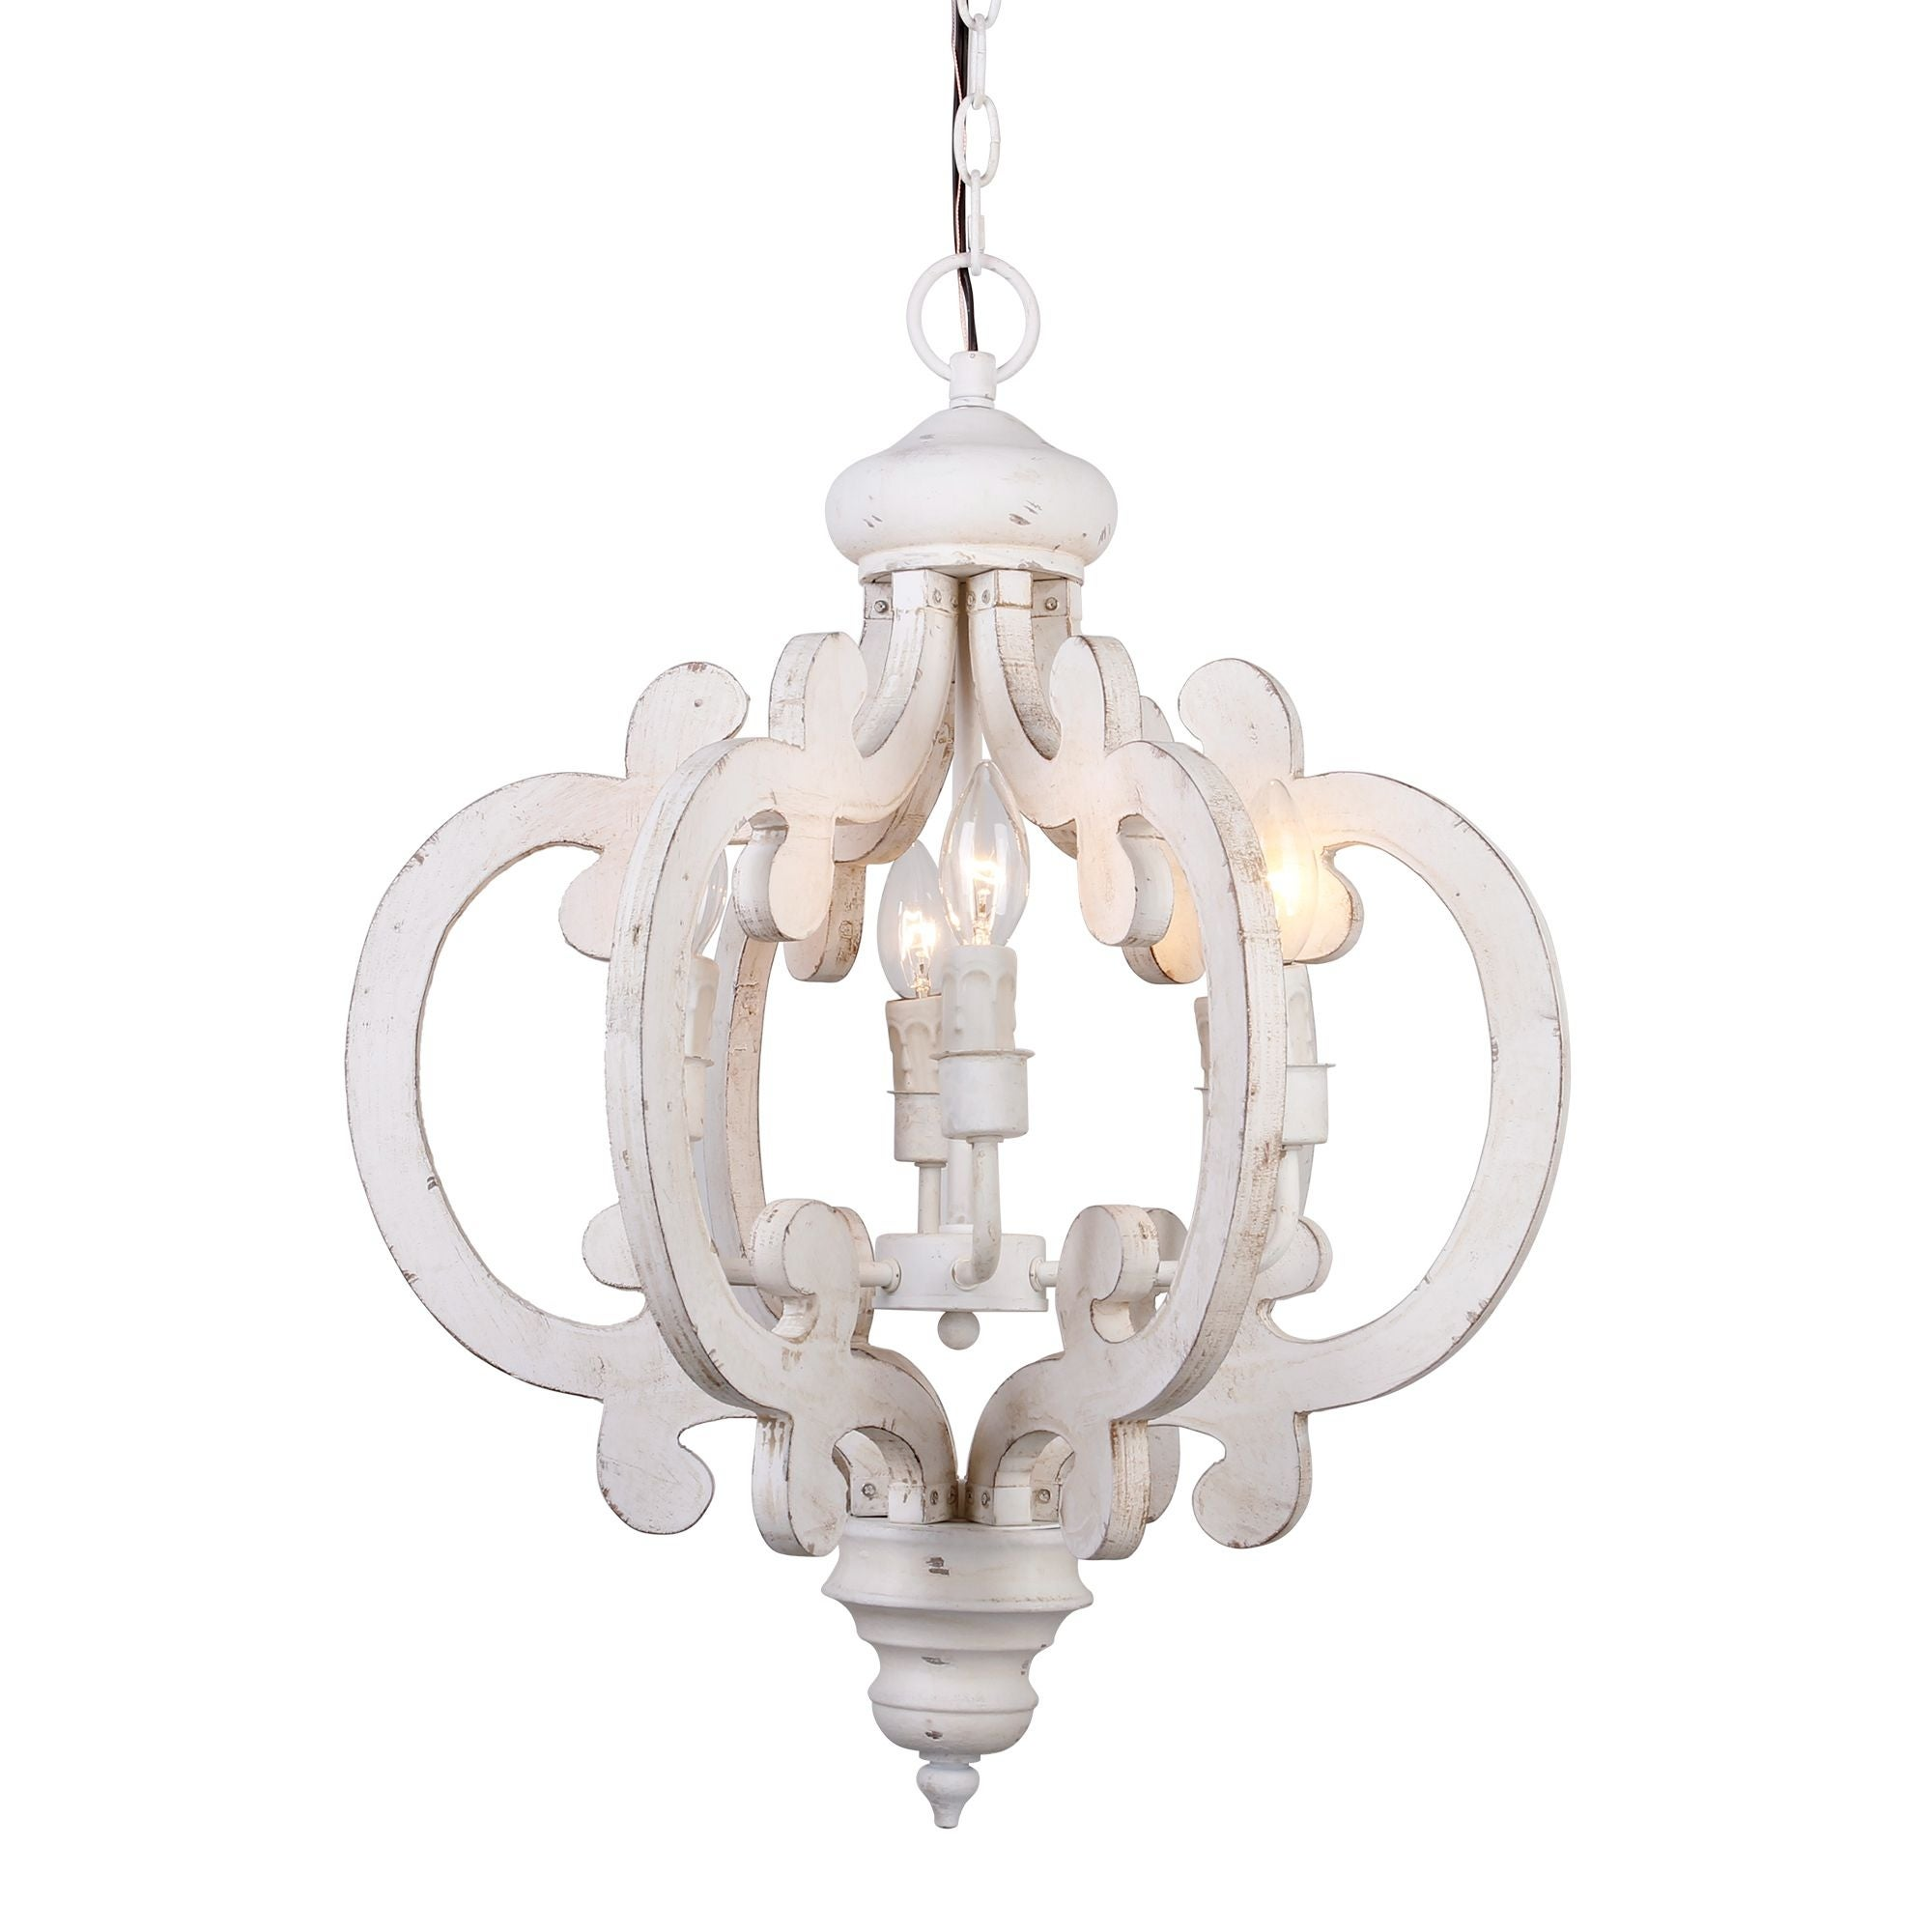 Shop distressed antique white 6 light wood chandelier on sale free shipping today overstock com 19288142